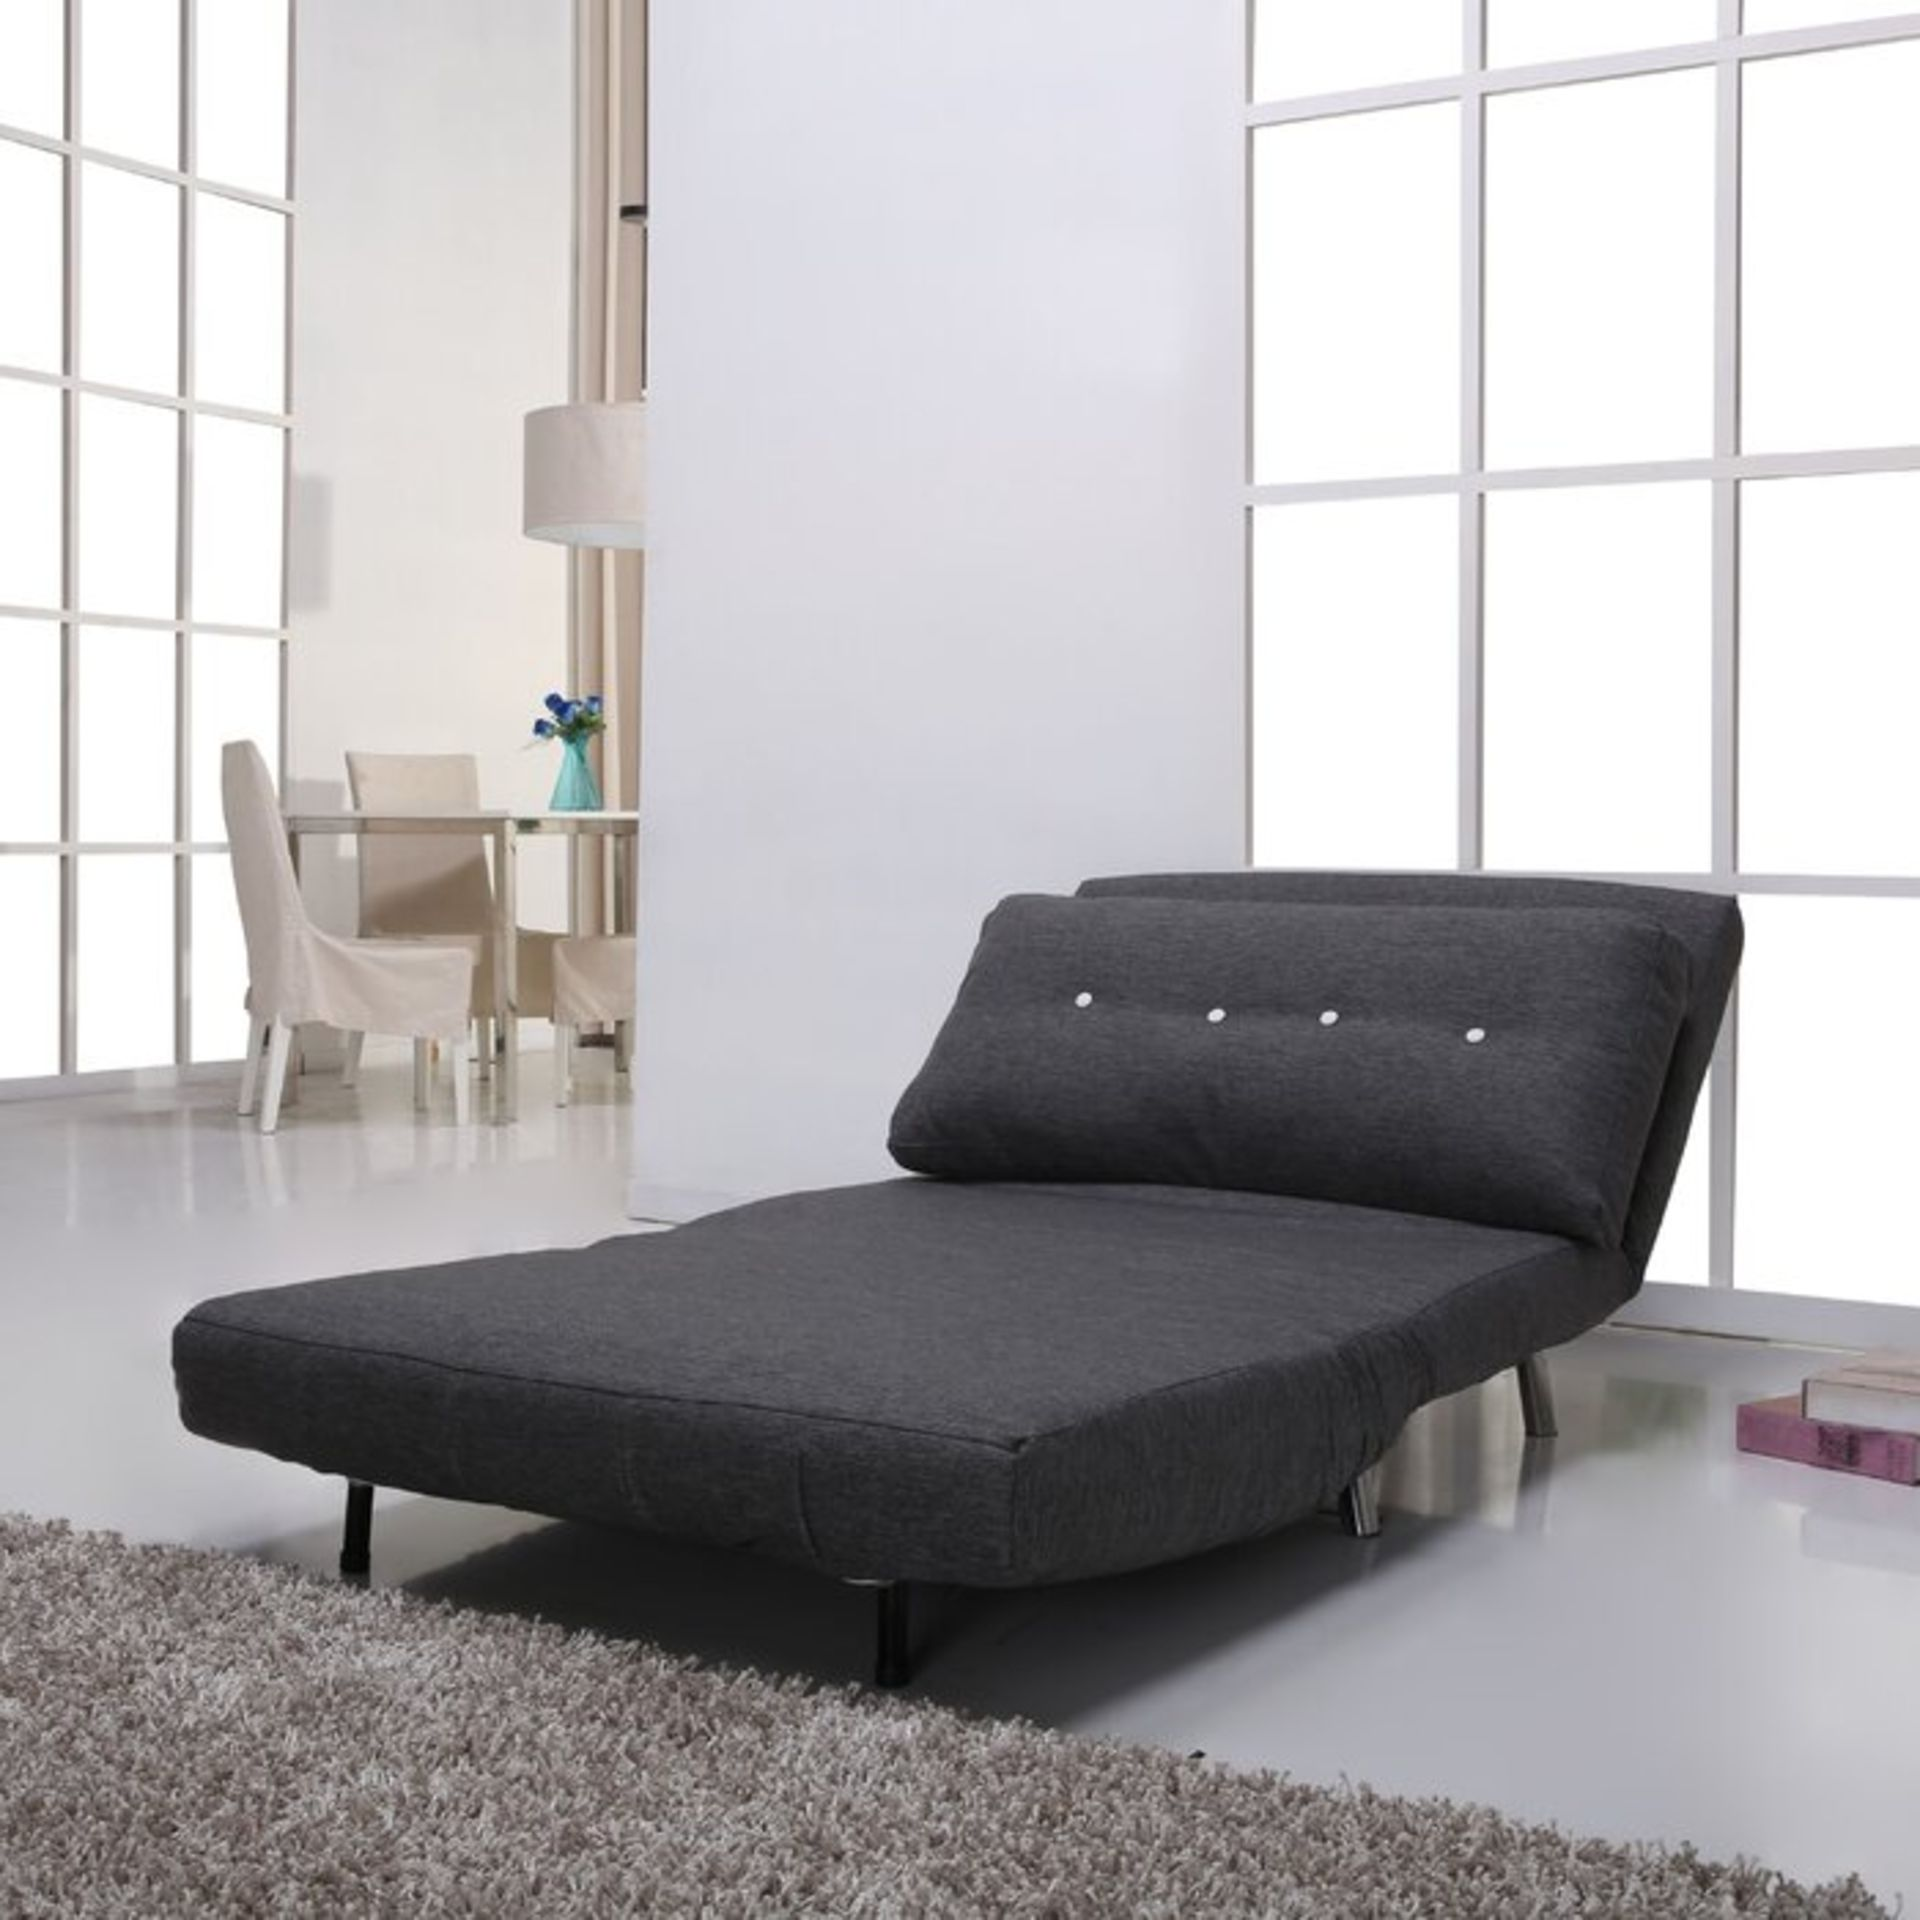 Rupesh 101Cm Wide - RRP £537.99 - Image 3 of 3